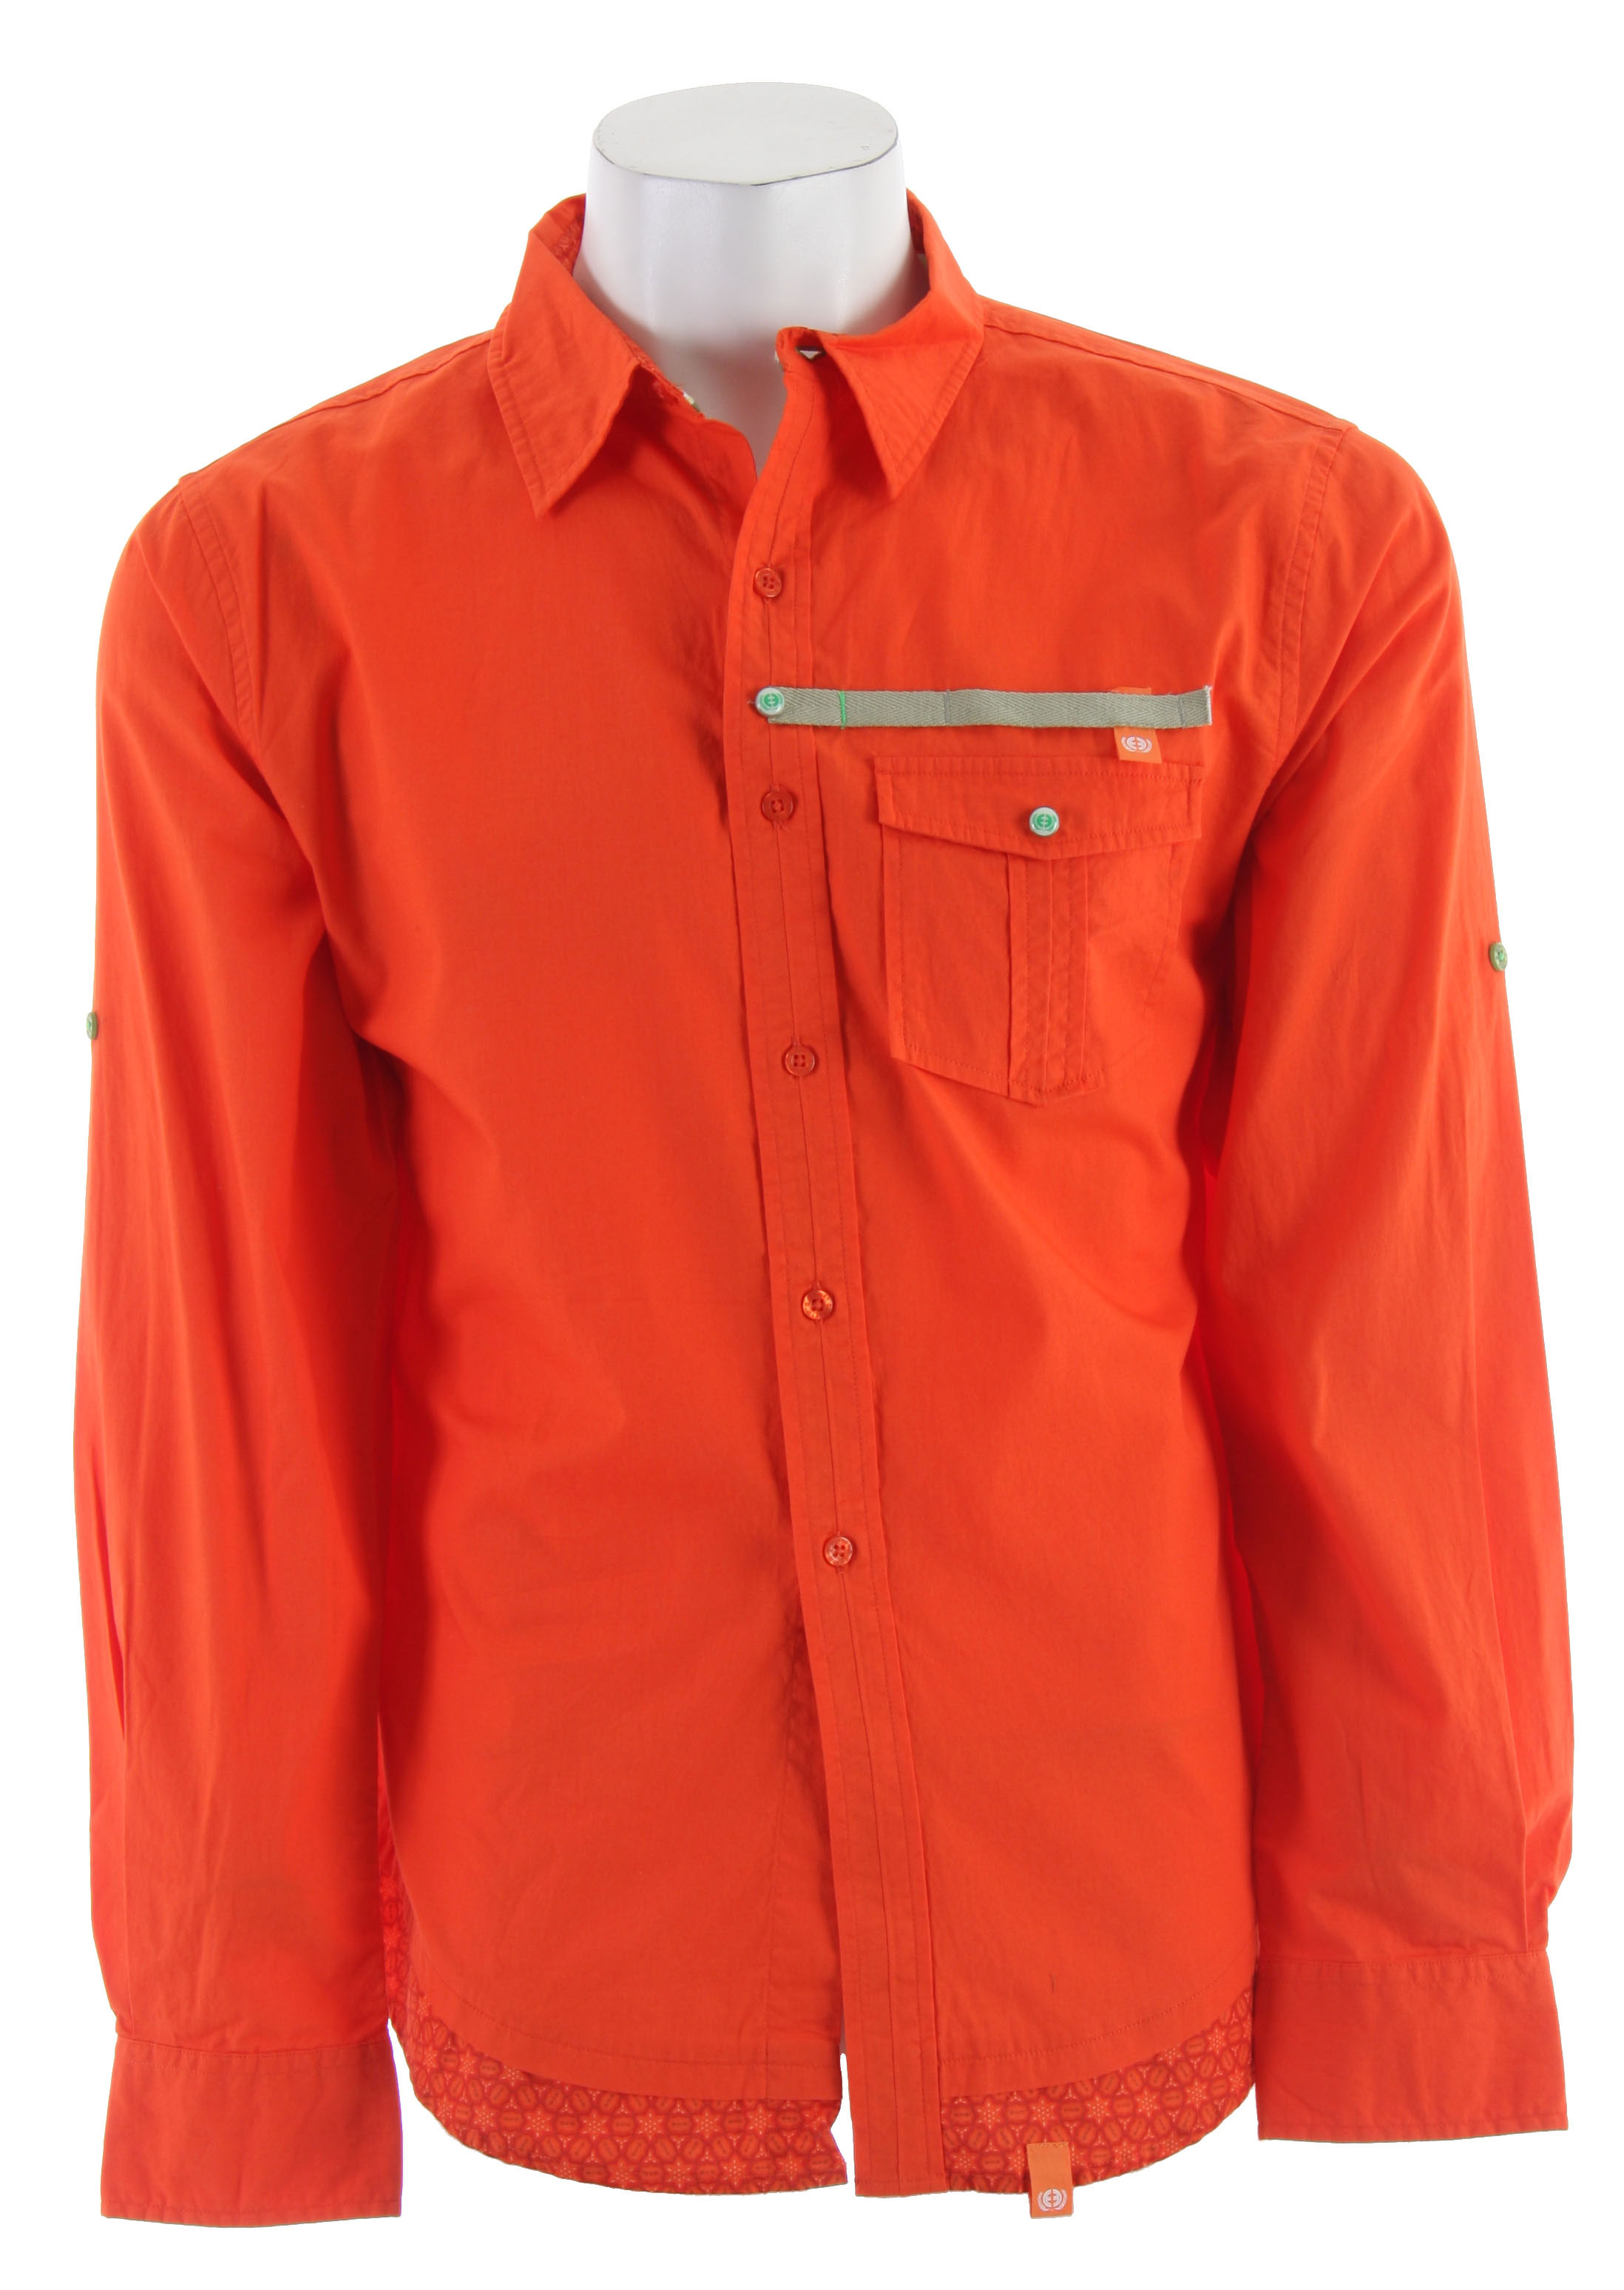 Planet Earth Morocco L/S Shirt Spicy Orange - $18.95